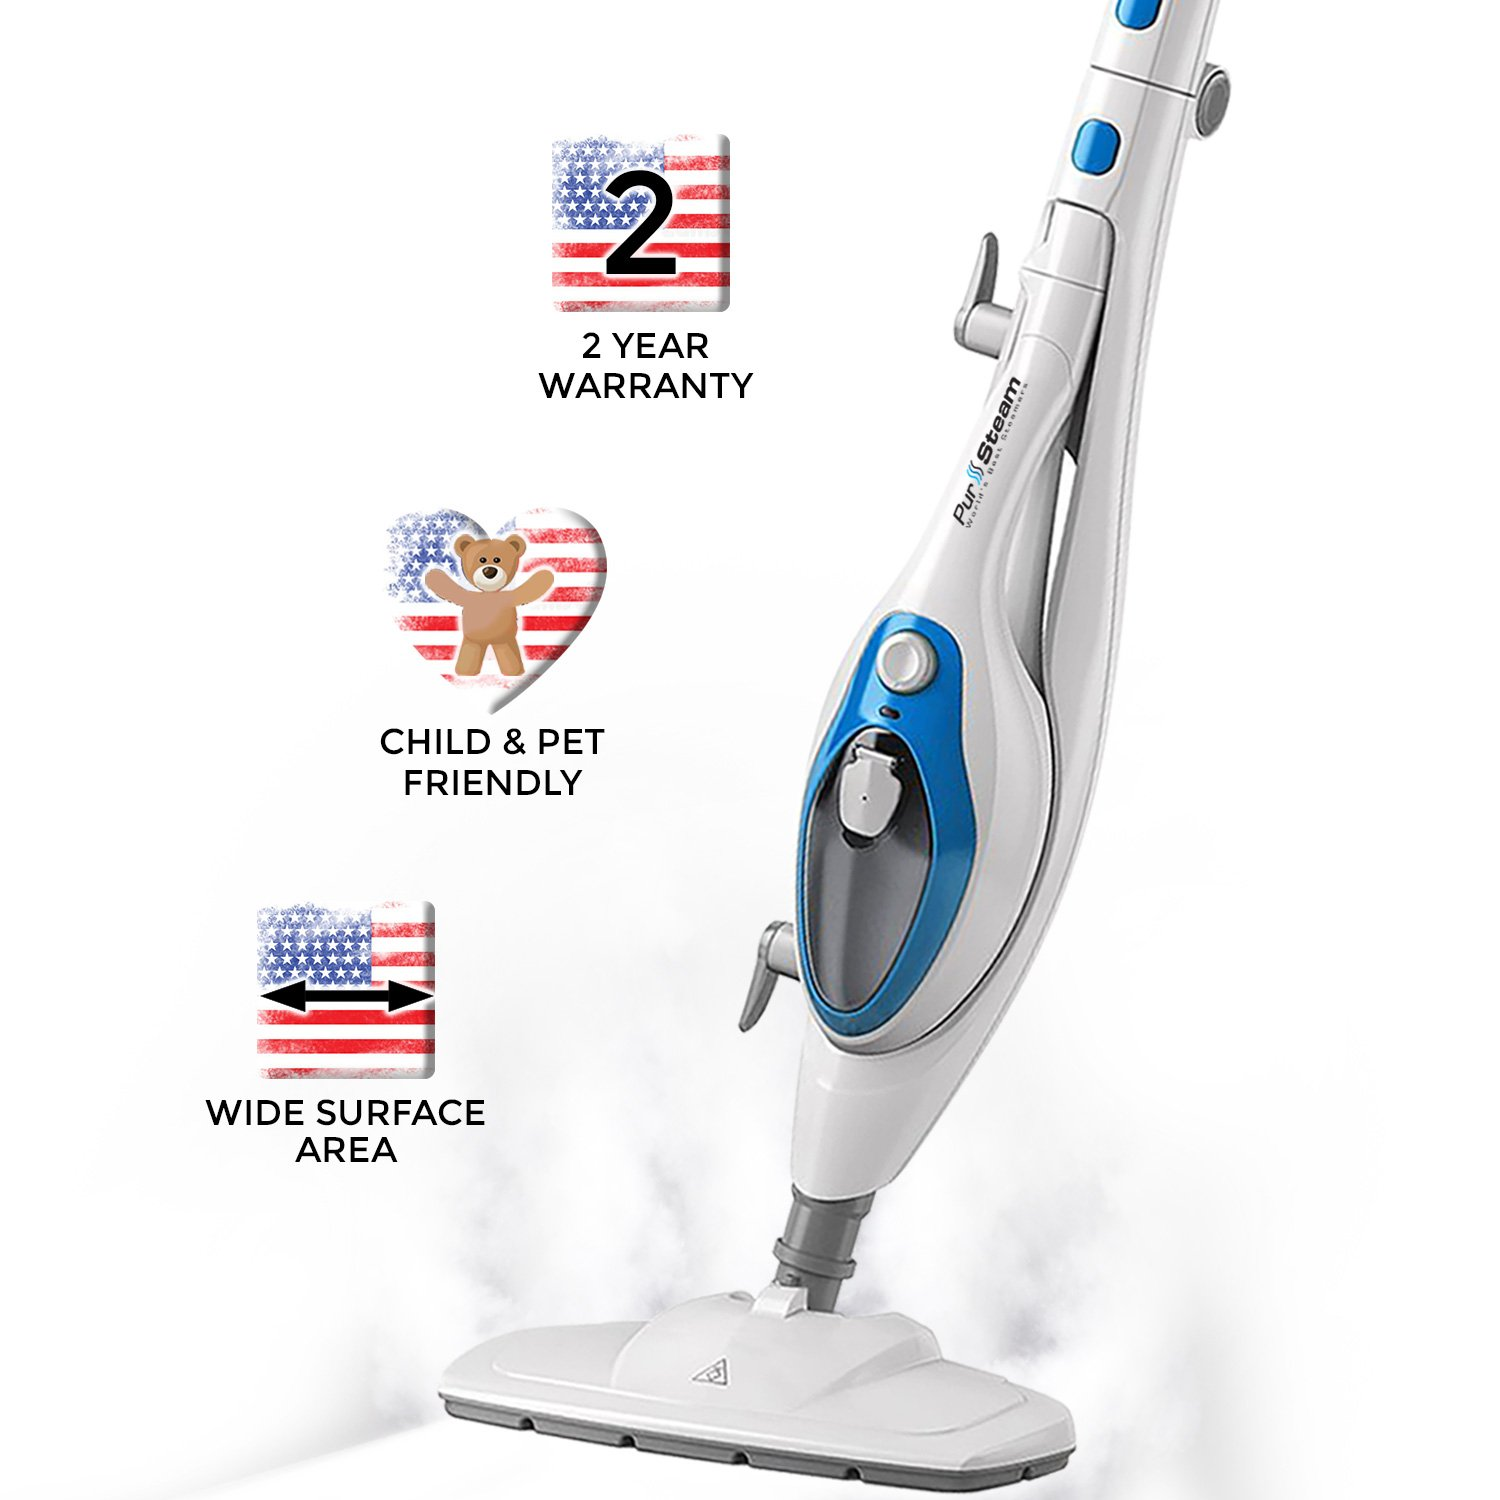 PurSteam Steam Mop Cleaner Steam Cleaning System ThermaPro